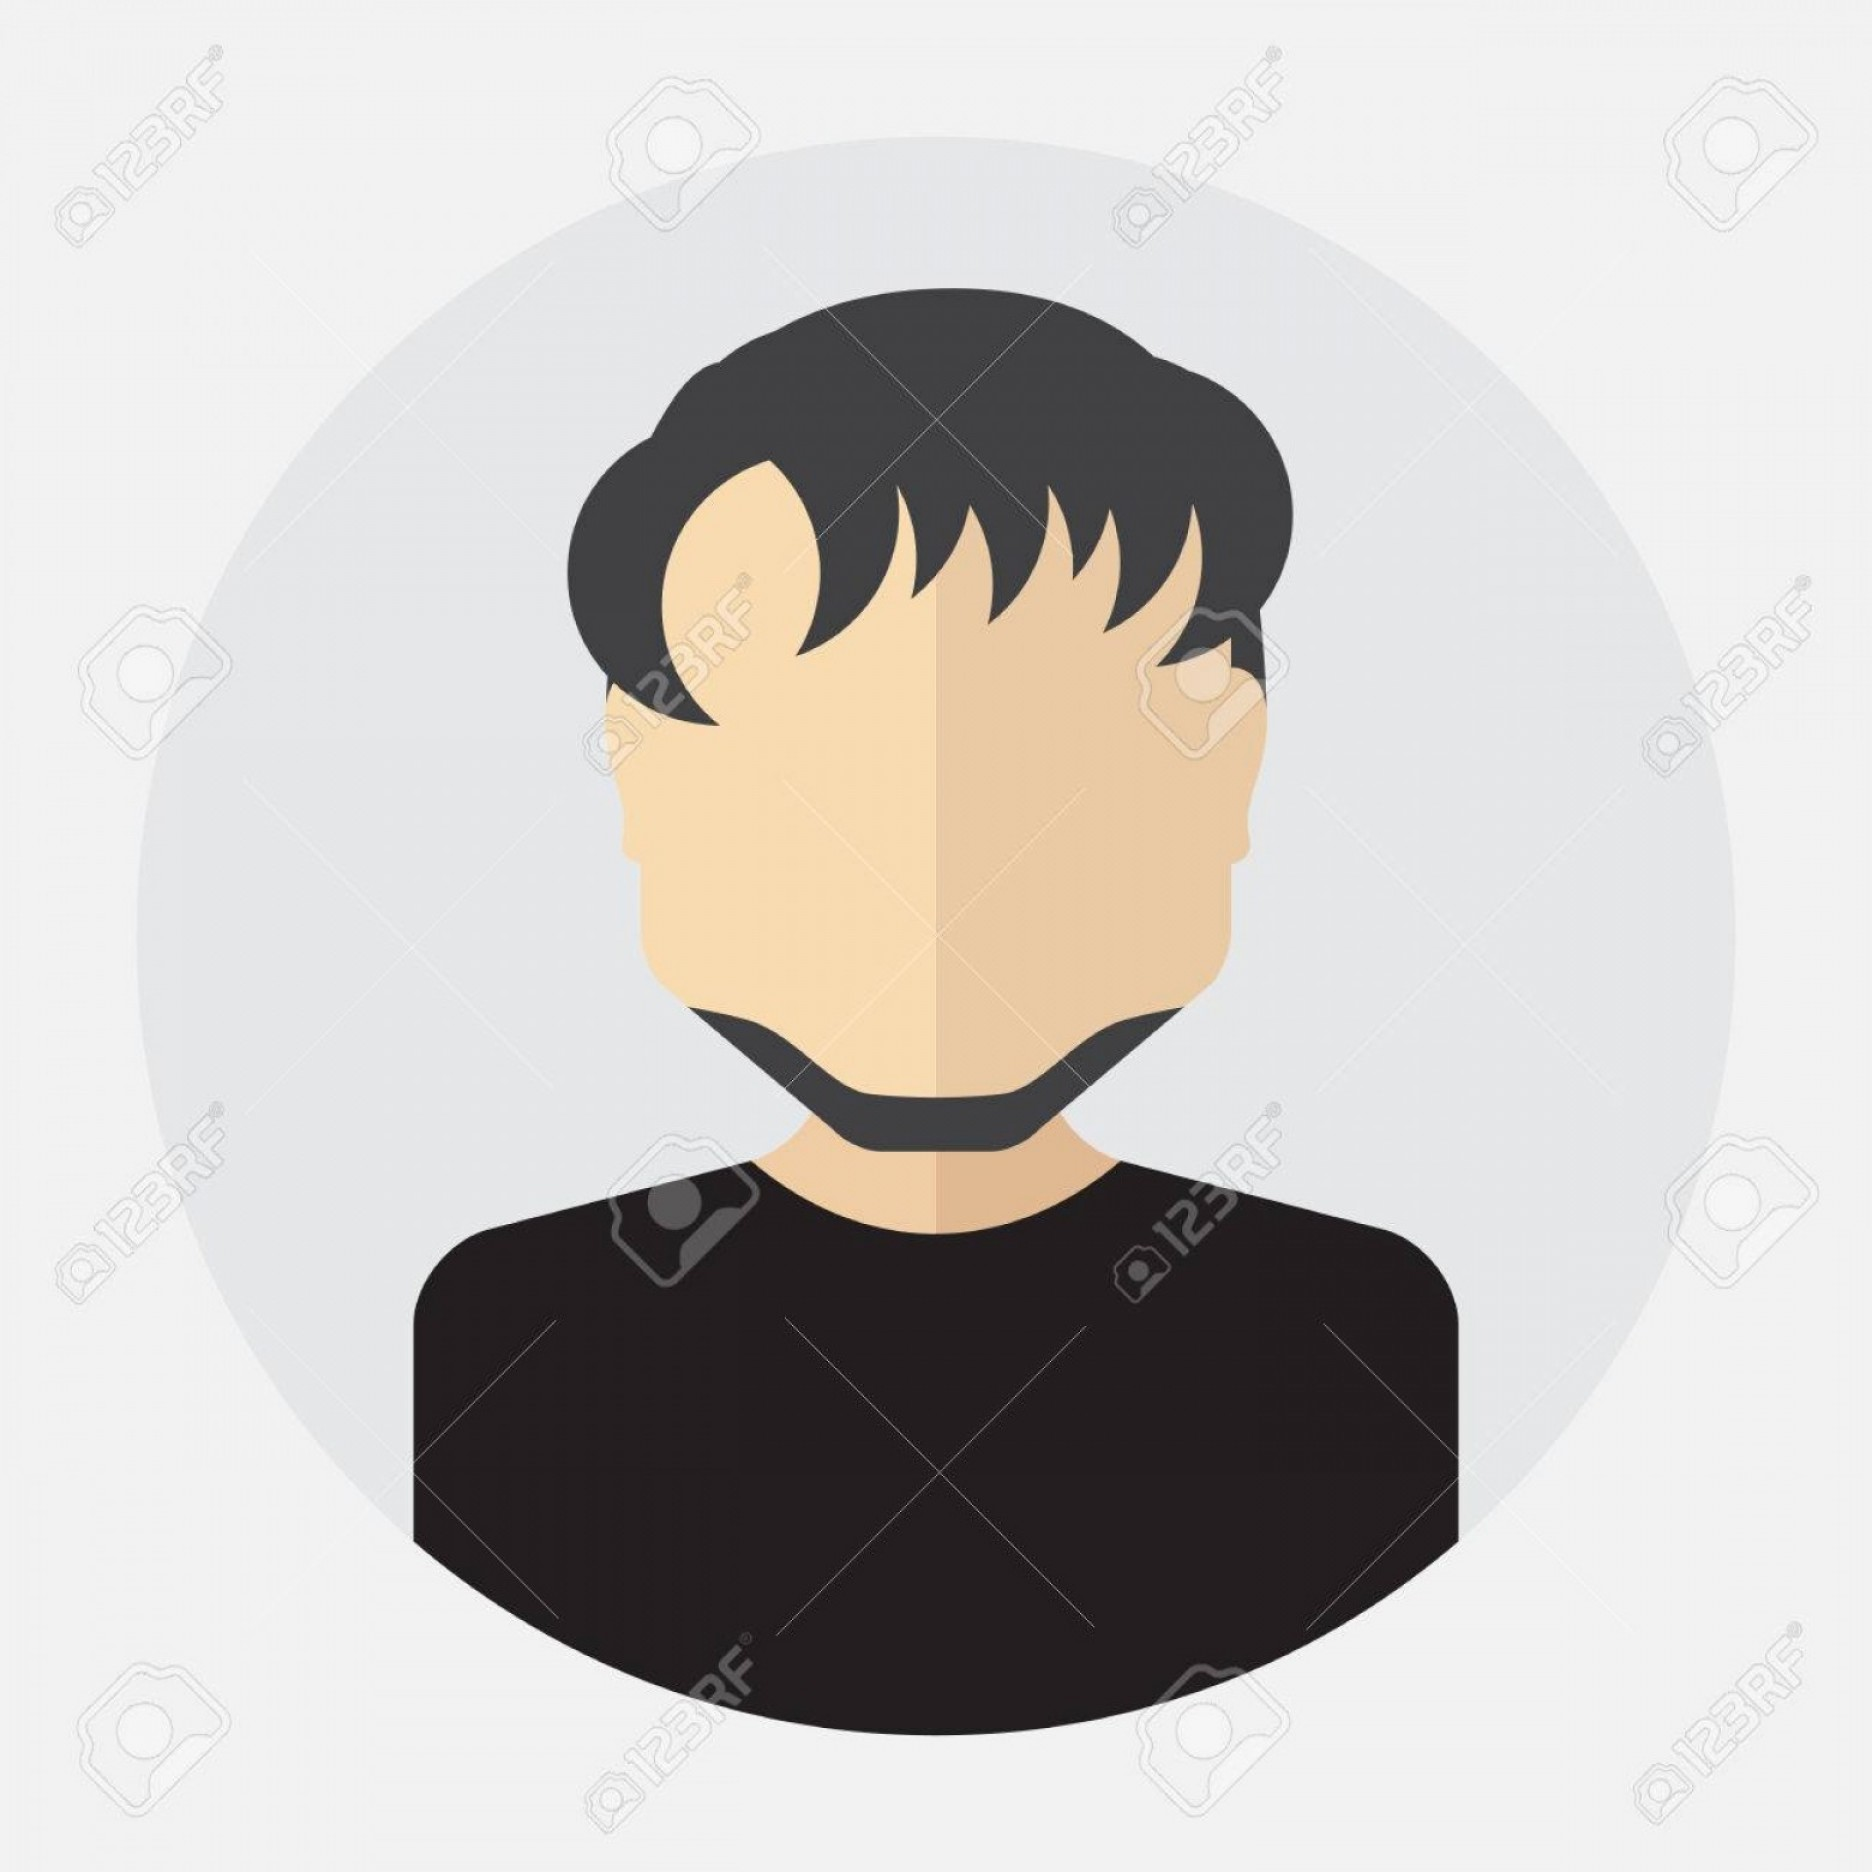 Male Face Icon Vector: Photostock Vector Vector Male Face Avatar Template Pictogram Button Round Trendy Flat Icon With Man For Business Inter